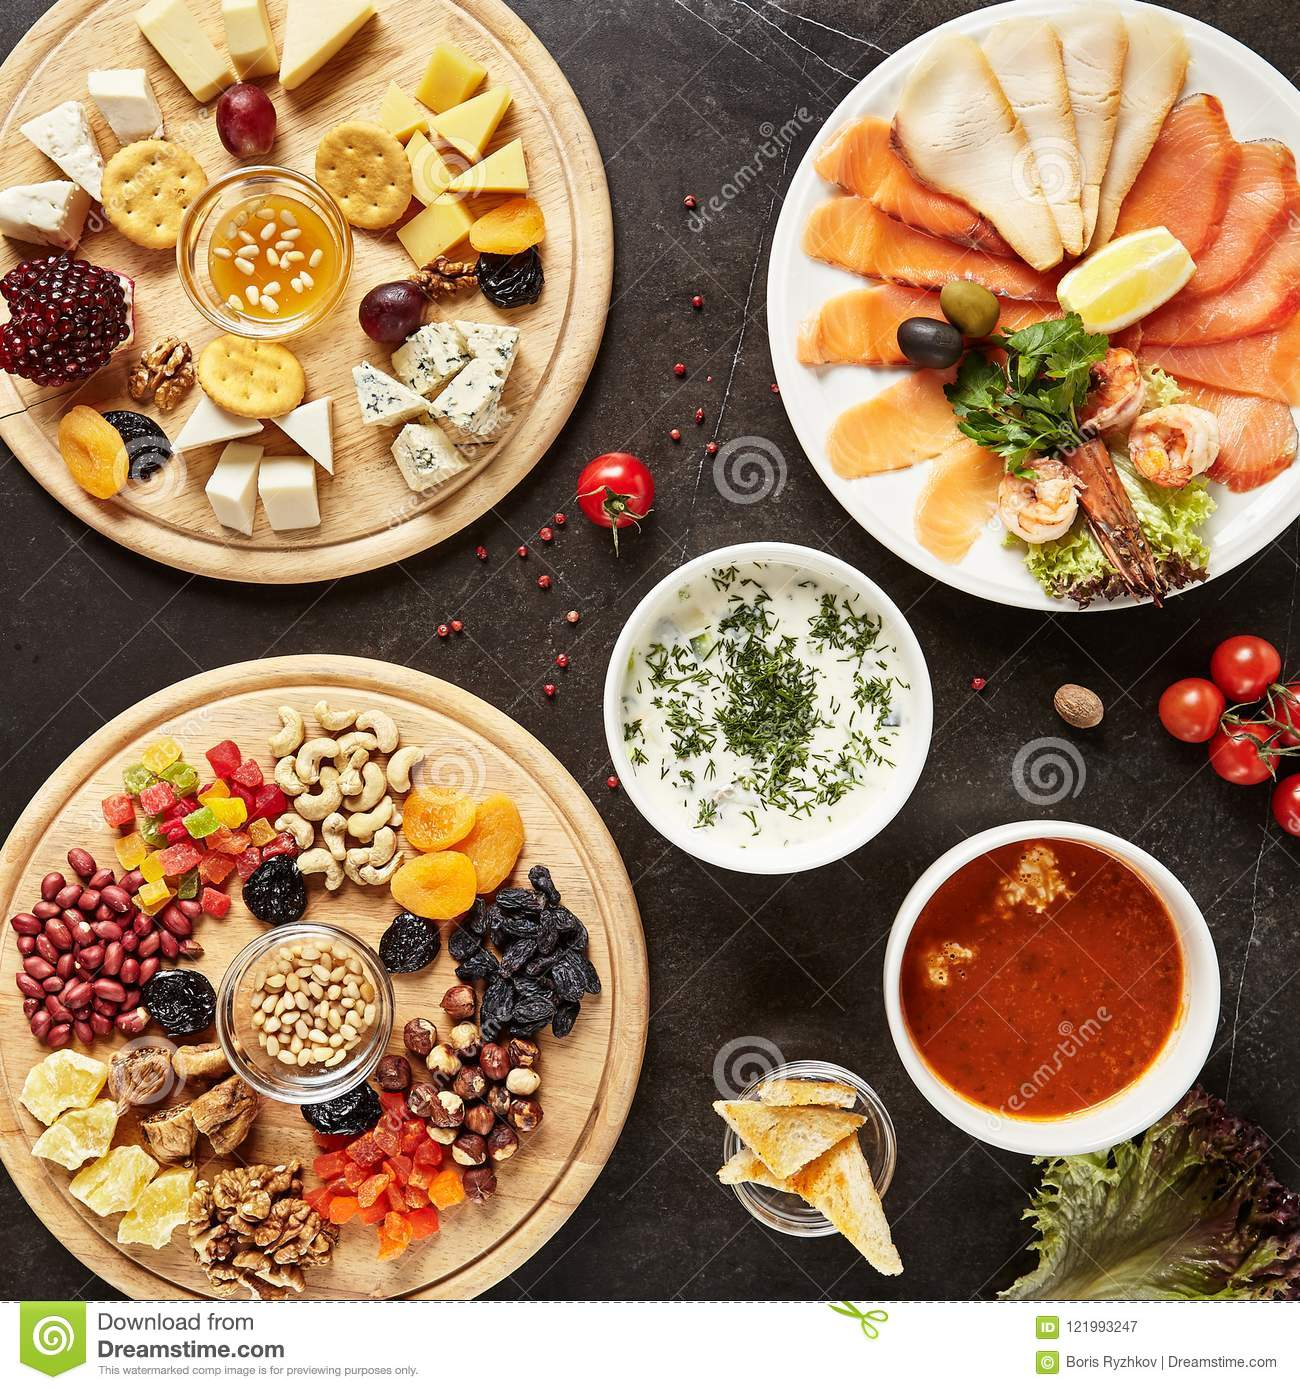 Wine Snack Mix With Cheese Plate And Nuts Dish And Salmon Plate Stock Image Image Of Camembert Table 121993247